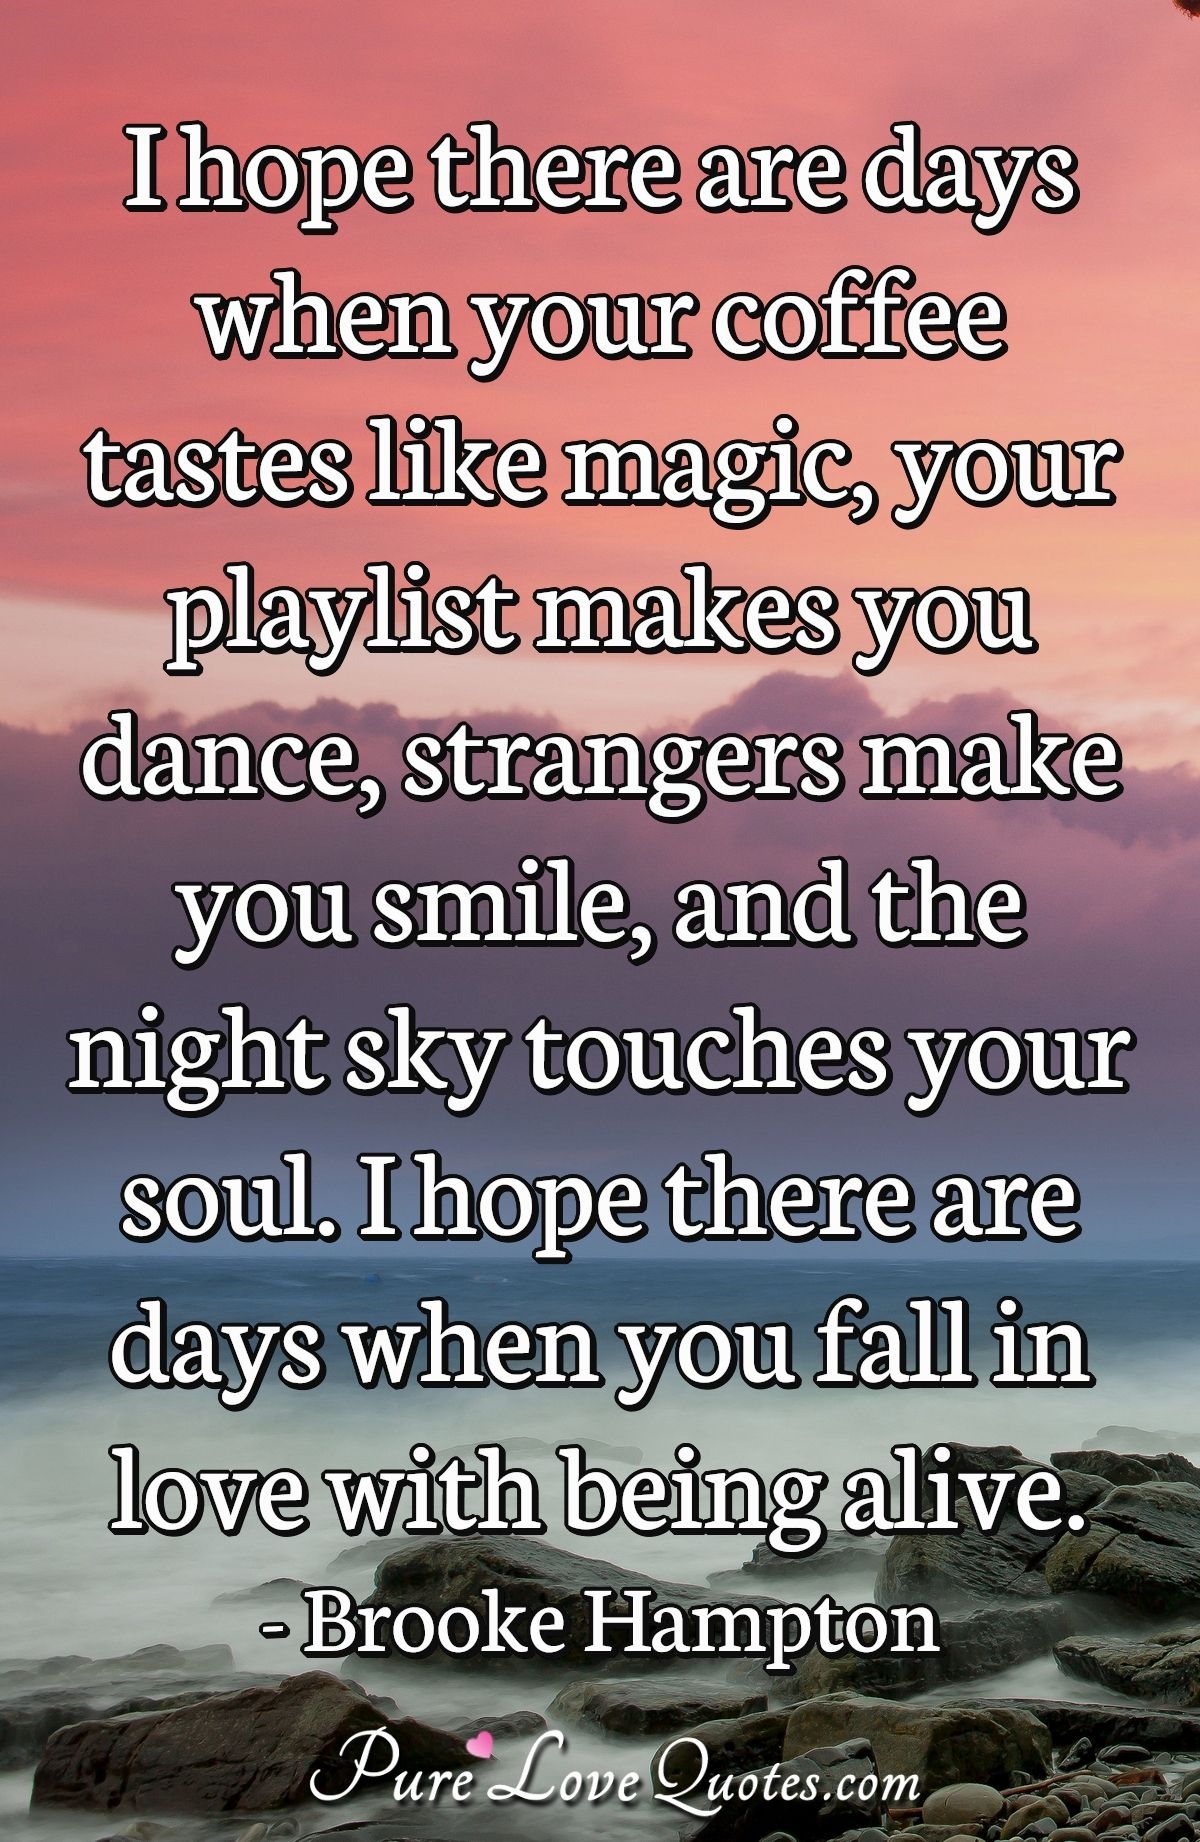 I hope there are days when your coffee tastes like magic, your playlist makes you dance, strangers make you smile, and the night sky touches your soul. I hope there are days when you fall in love with being alive. - Brooke Hampton